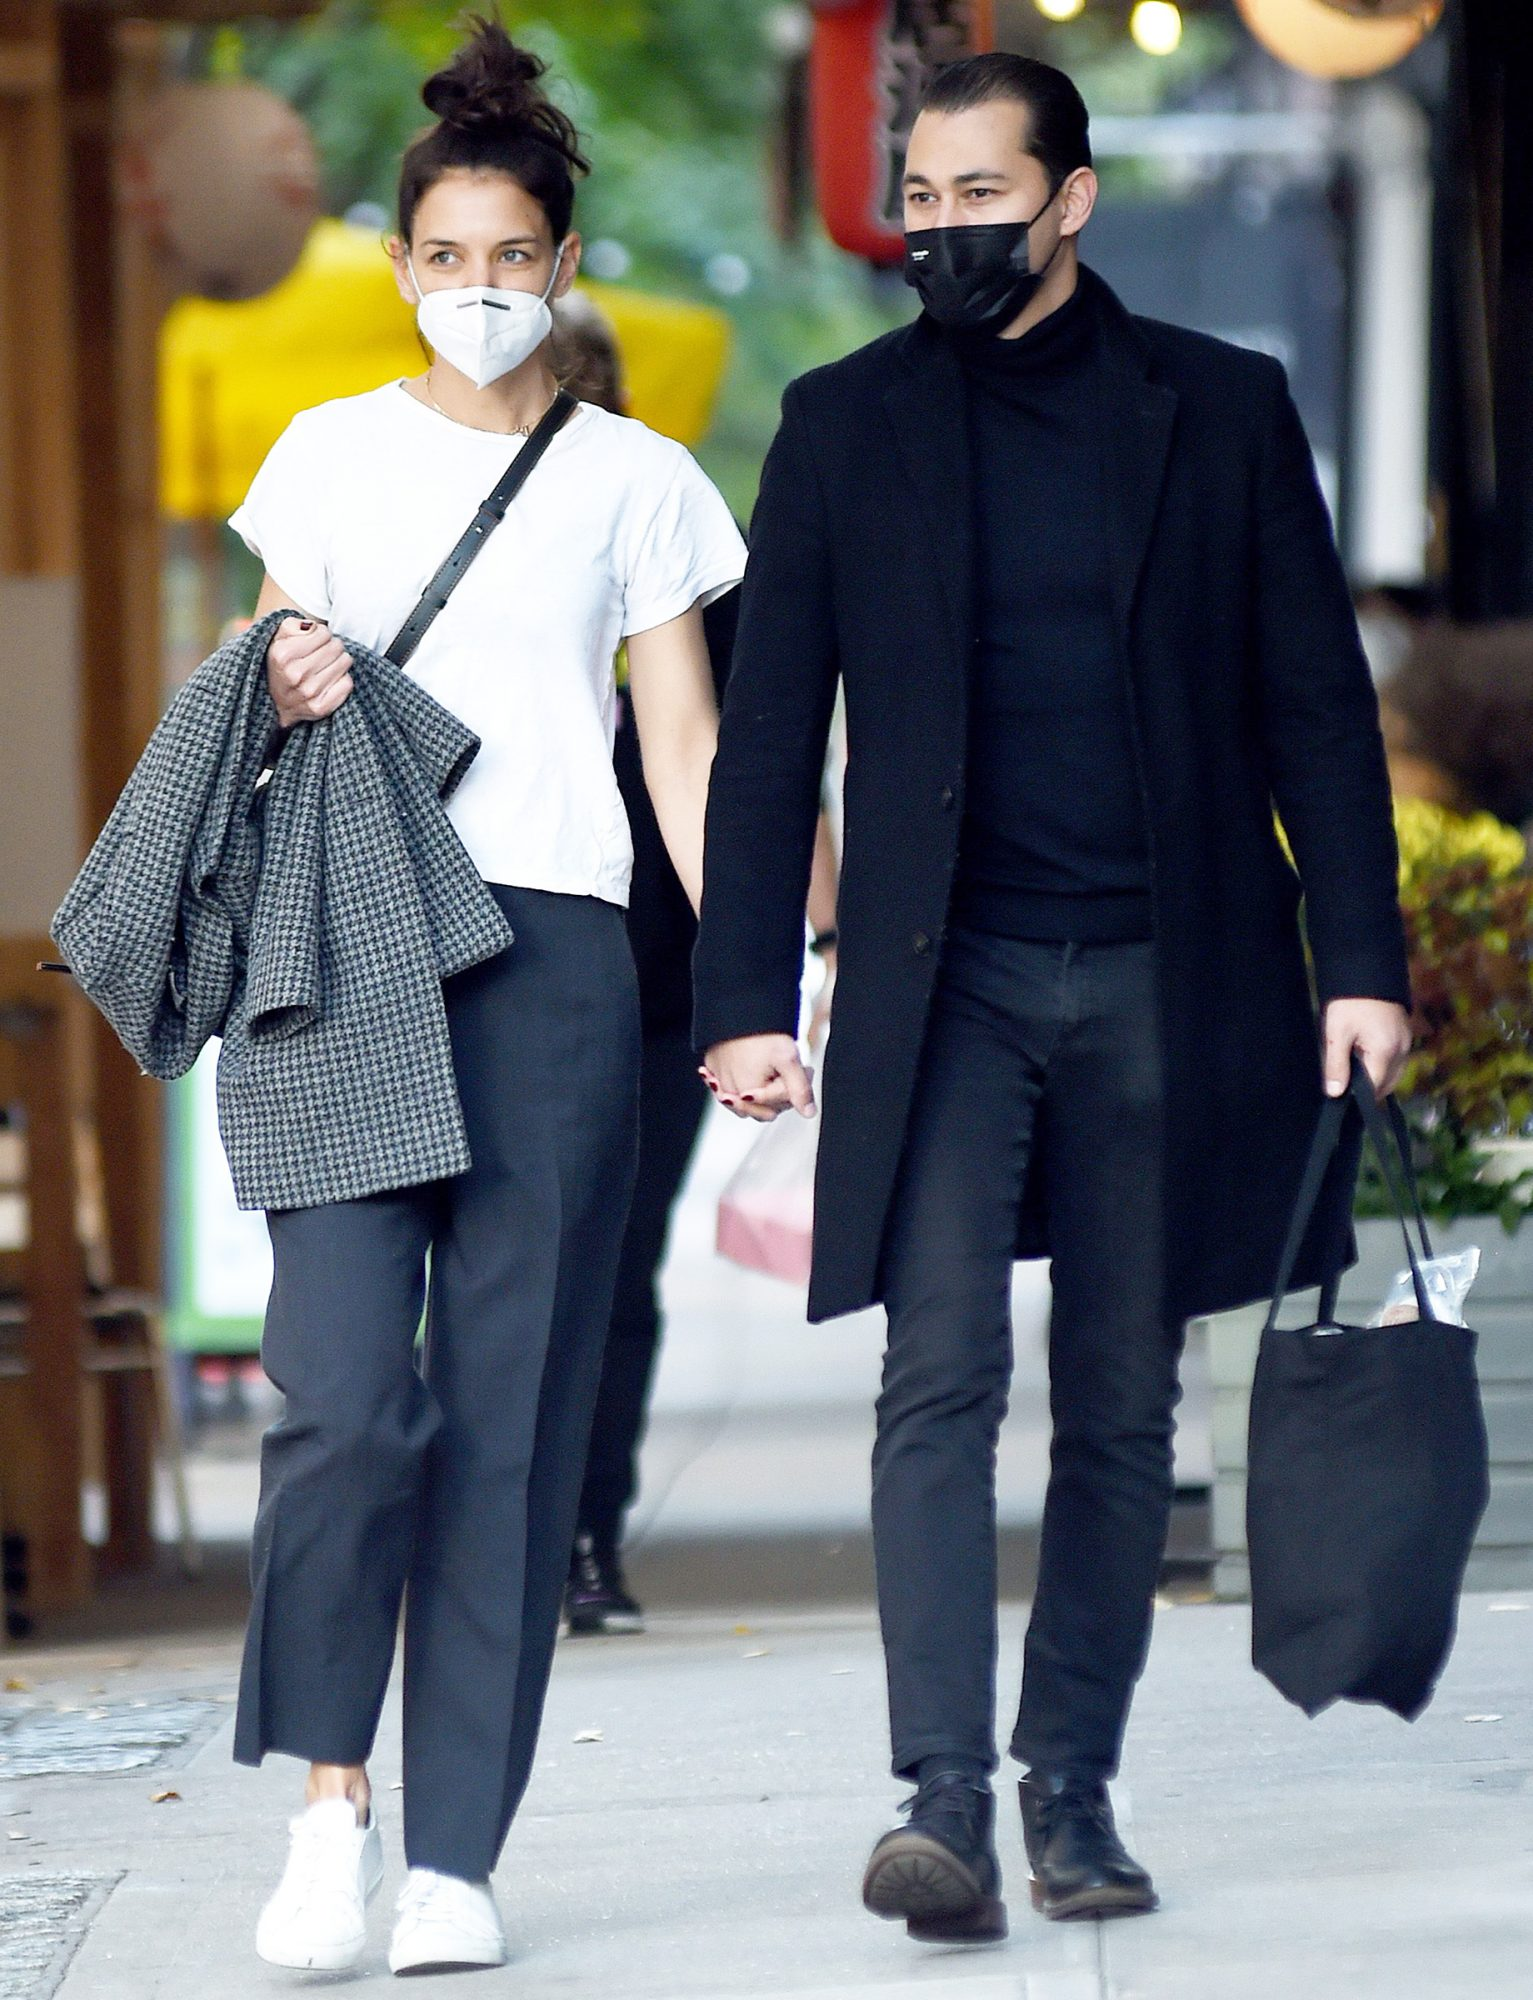 Katie Holmes and Emilio Vitolo Jr. out and about, New York, USA - 19 Oct 2020